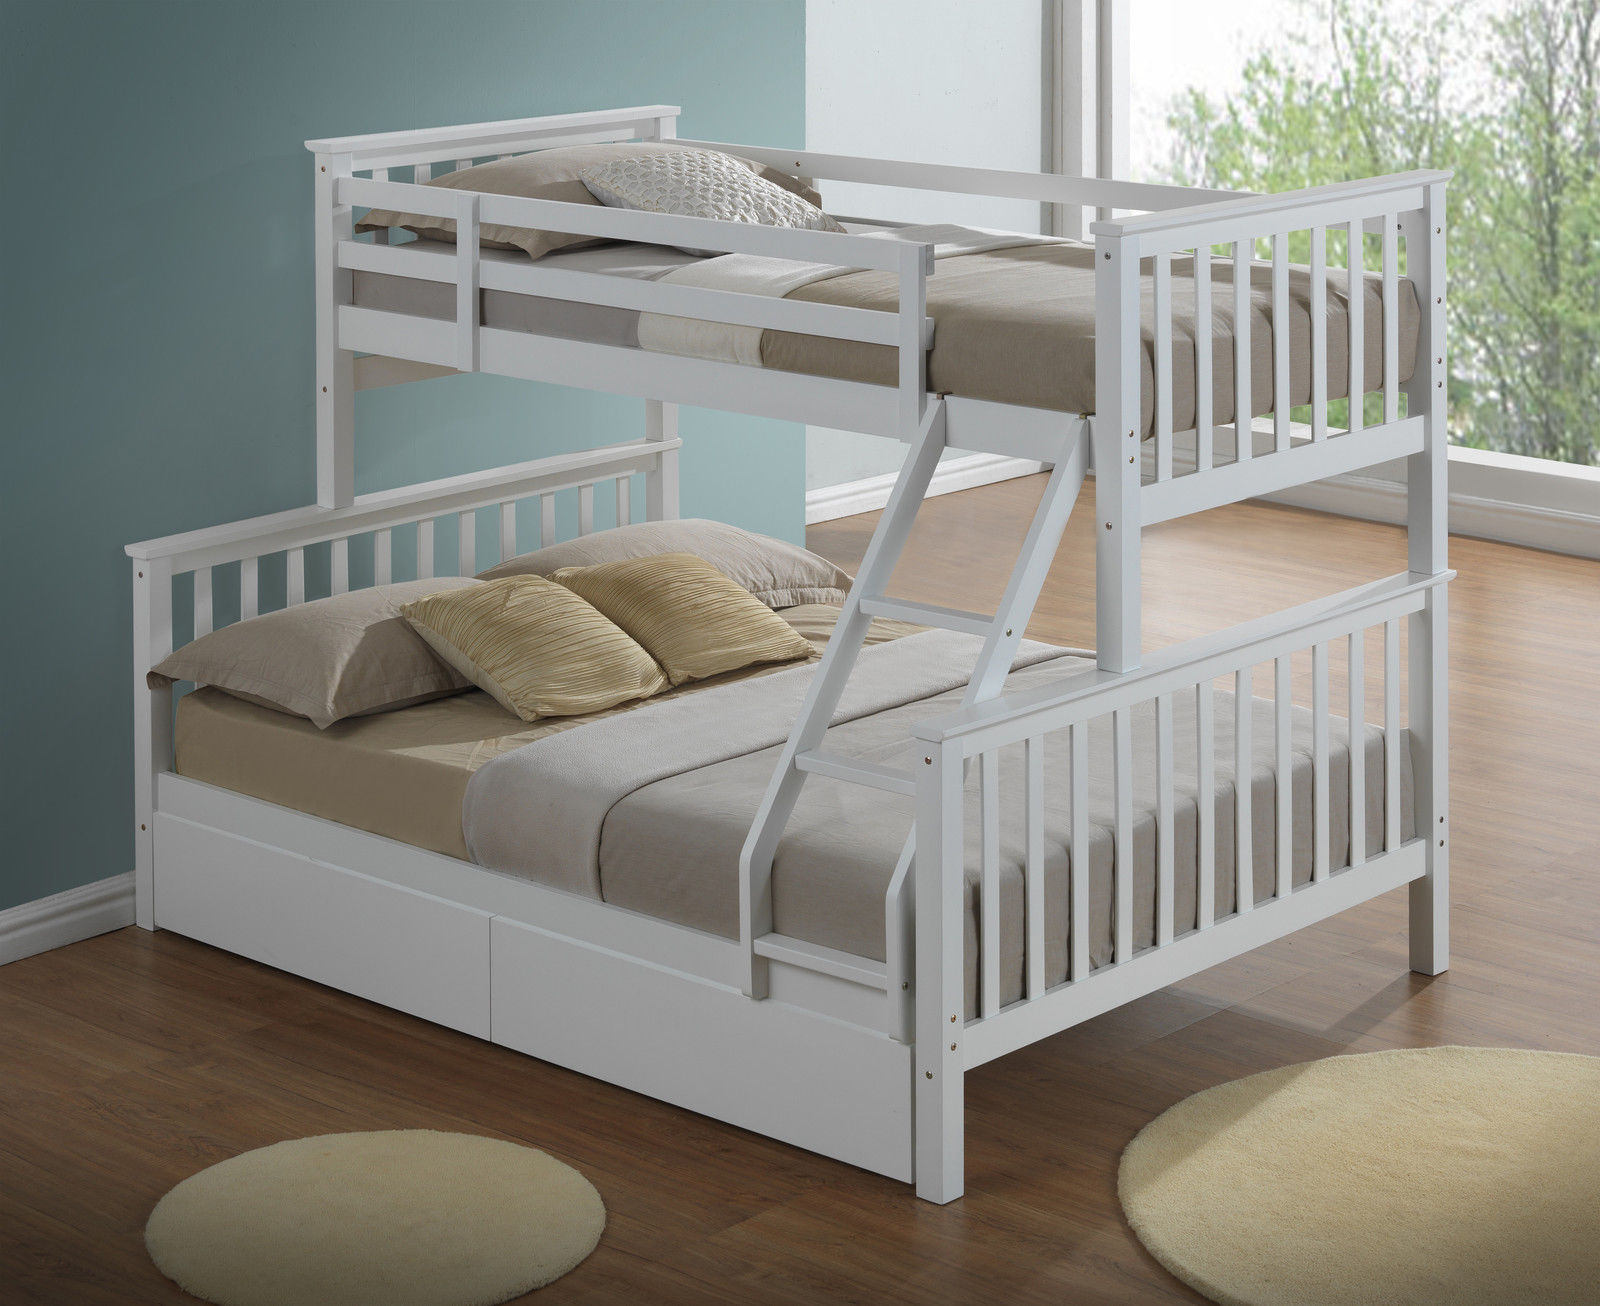 Modern 3 Sleeper White Childrens Bunk Bed Inc Drawers